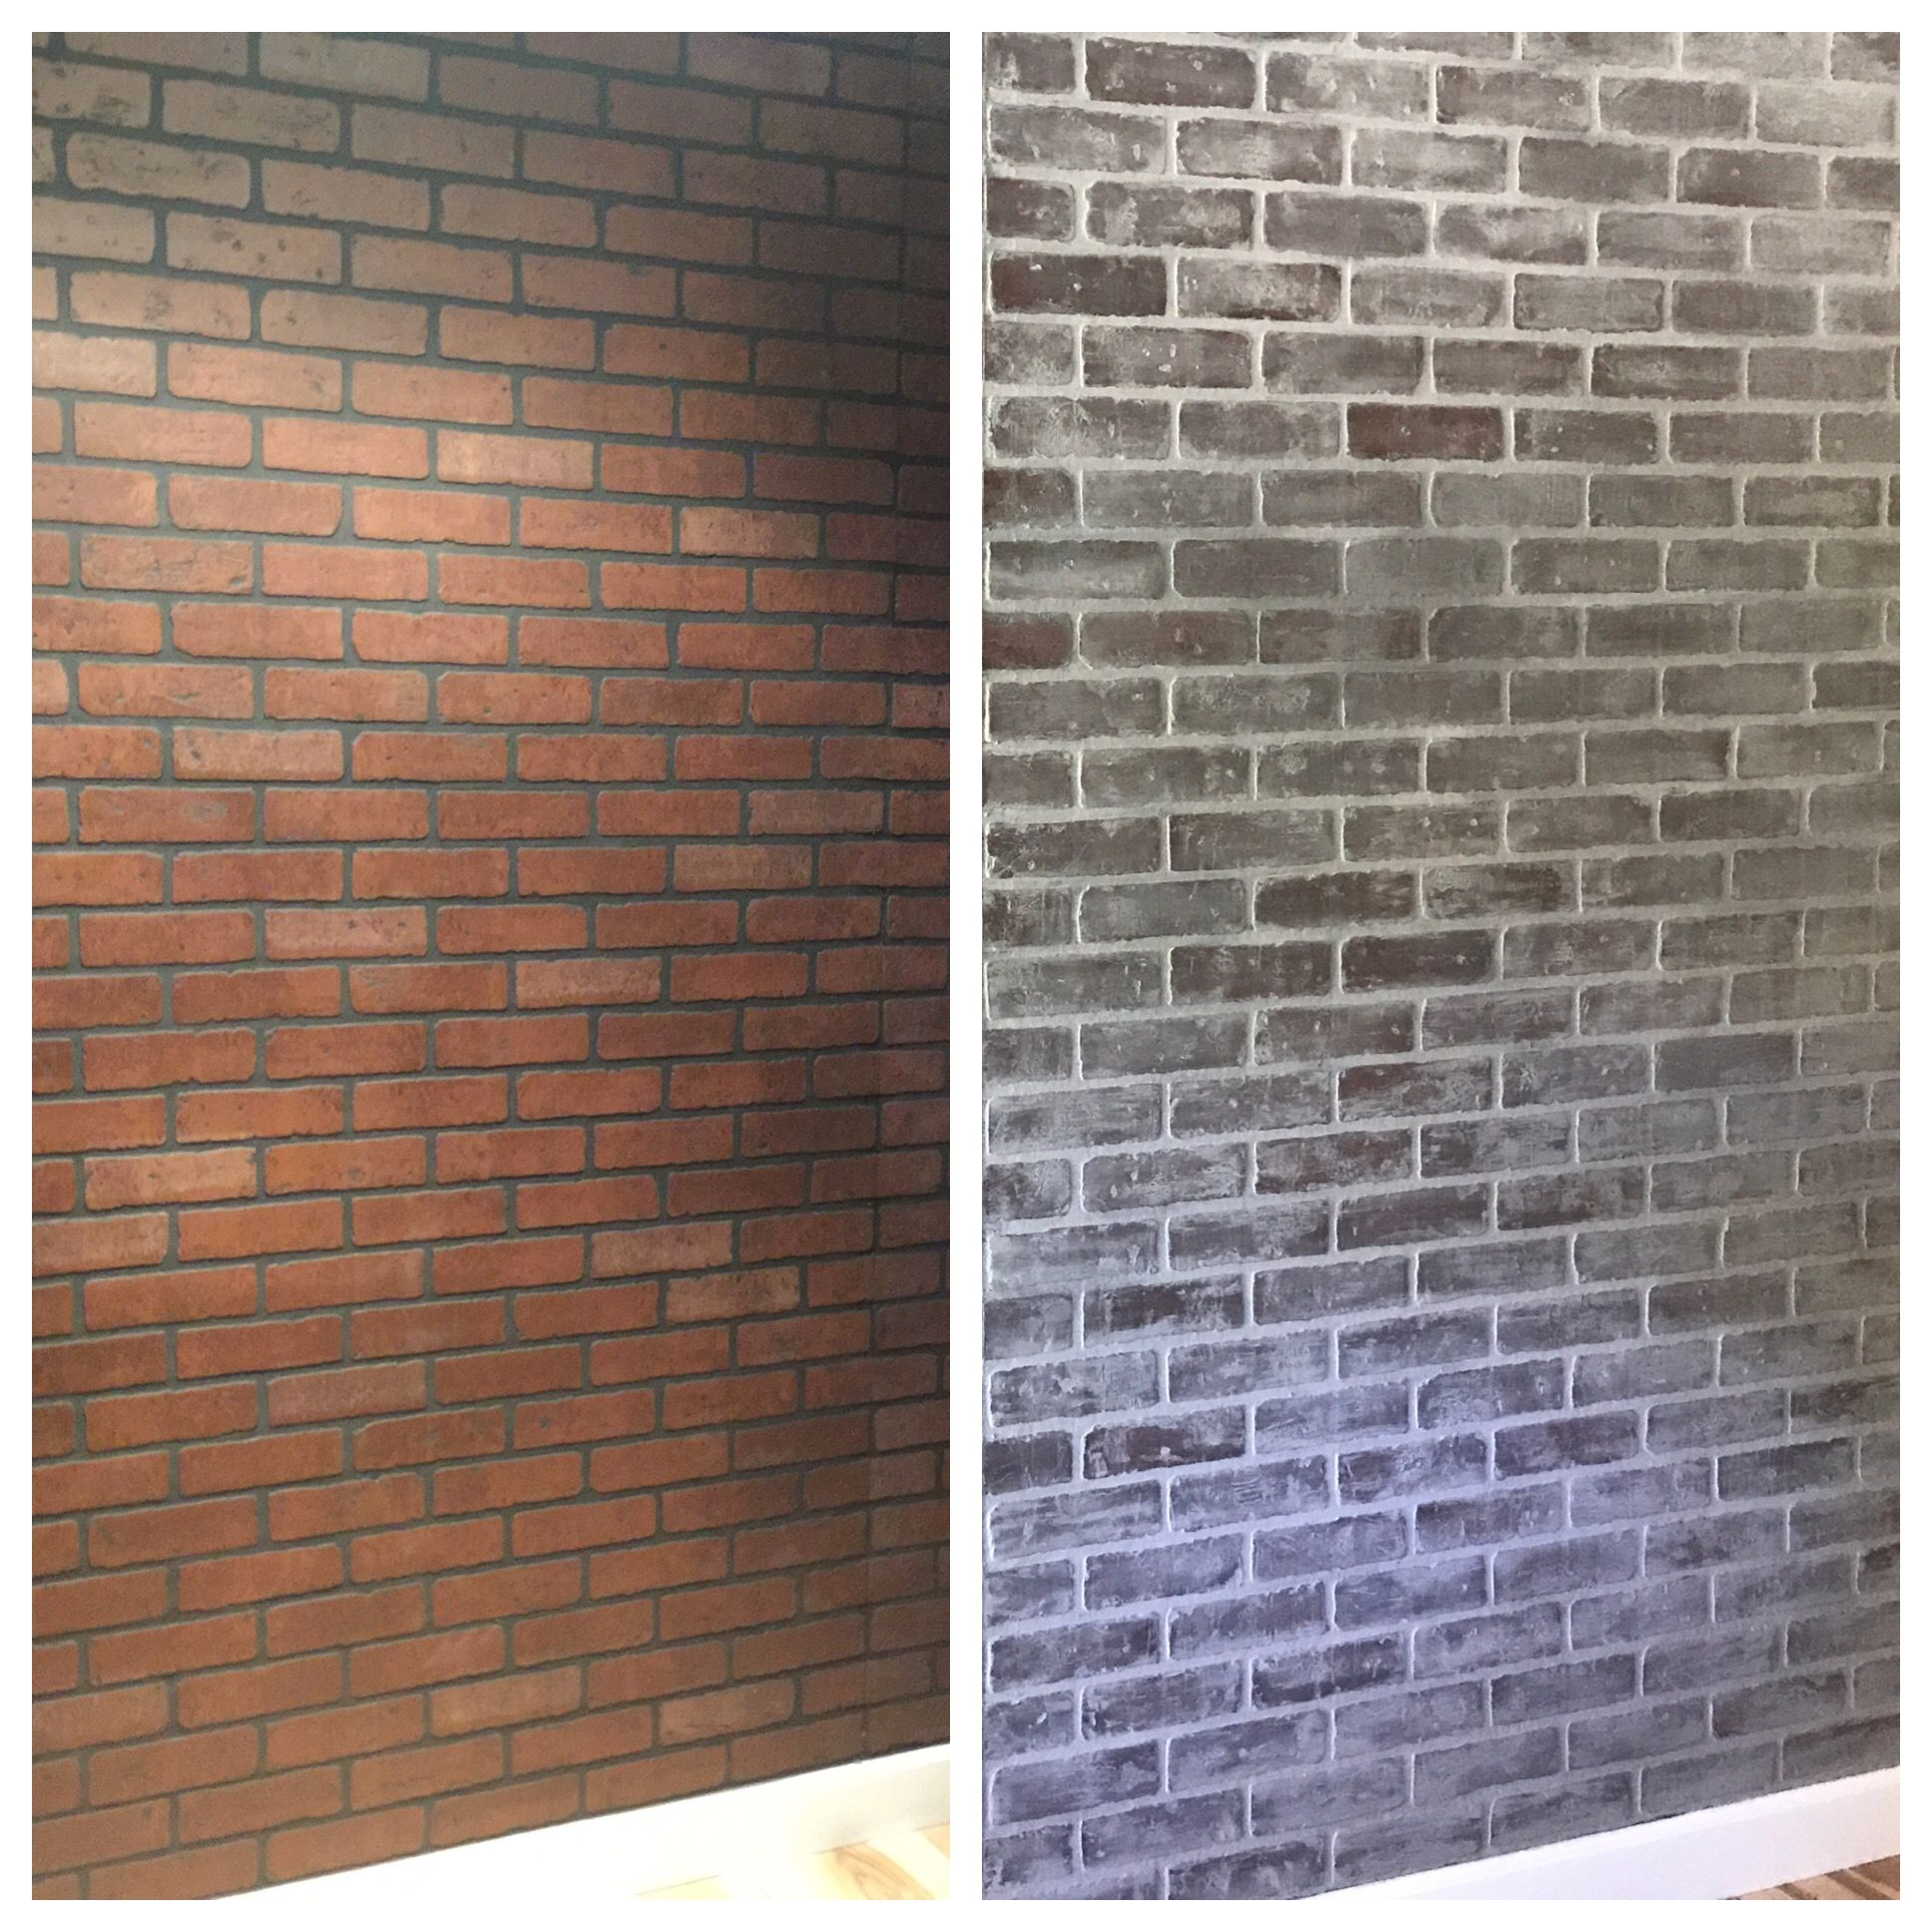 How To Install Faux Brick Panels This Is An Easy Tutorial And You Will Love Your Brick Walls Fauxbrick Faux Brick Wall Panels Faux Brick Walls Brick Paneling